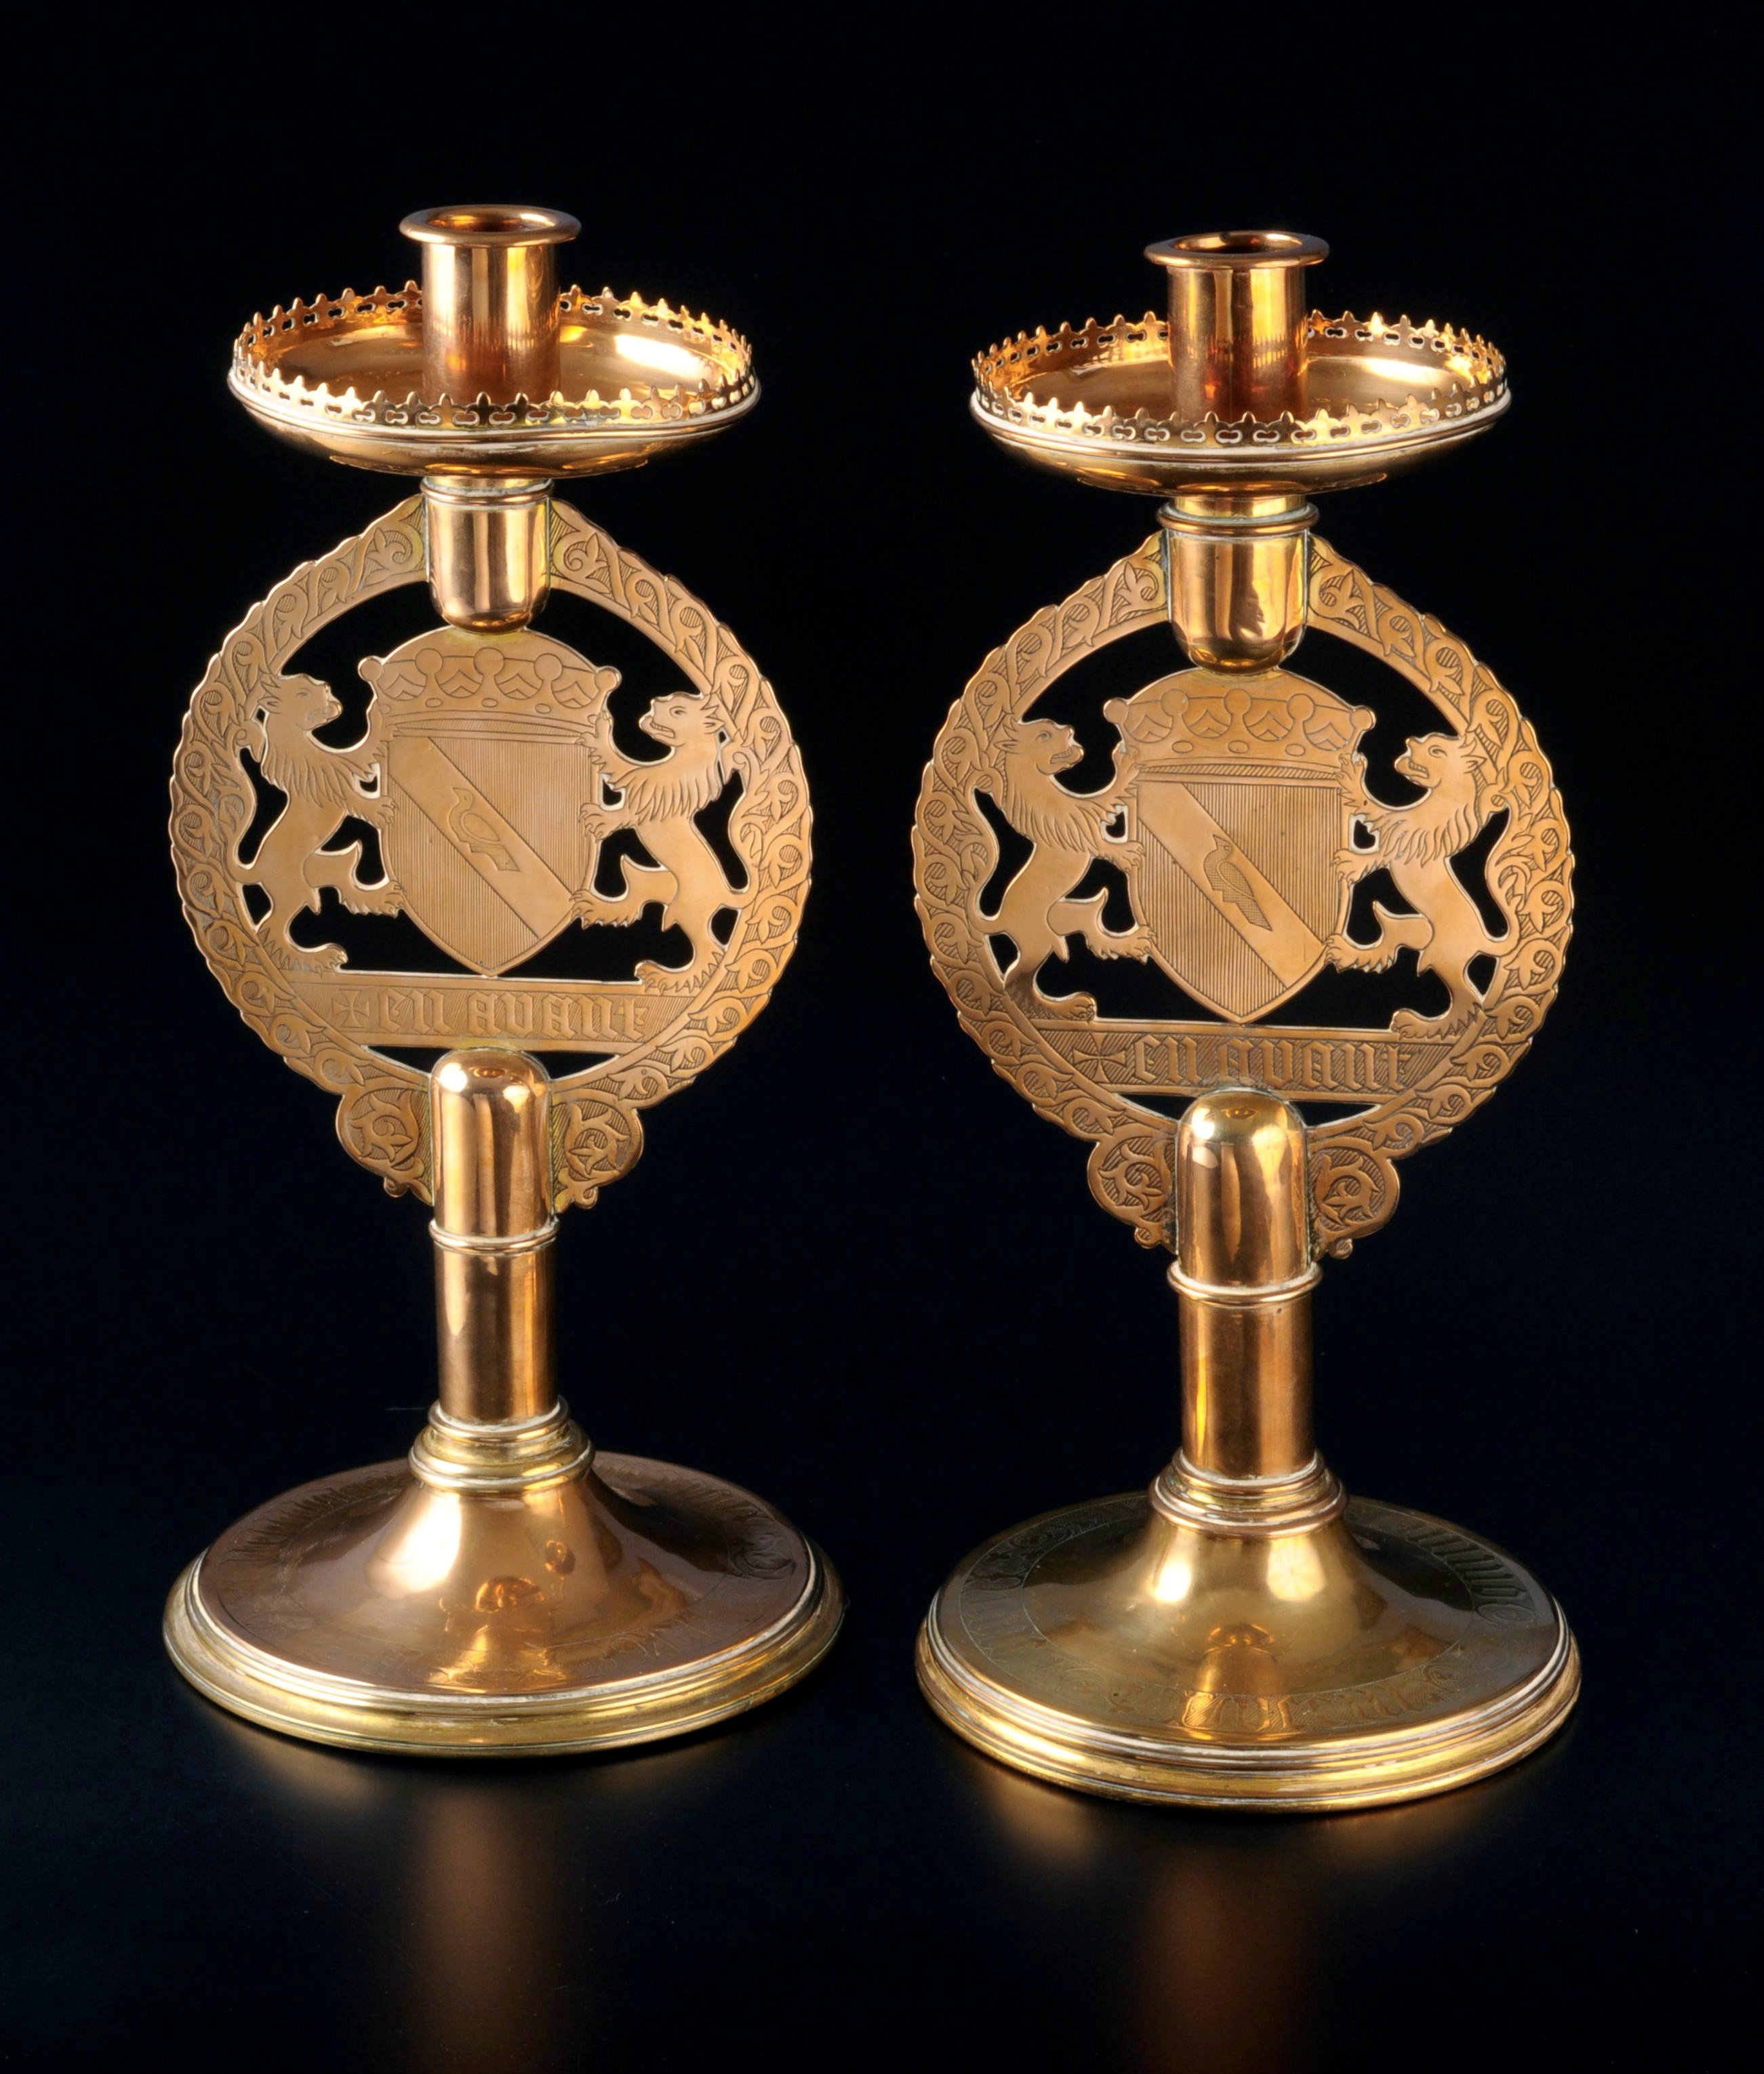 pair of gilt brass candlesticks, manufactured by John Hardman & Co., Birmingham, c.1844